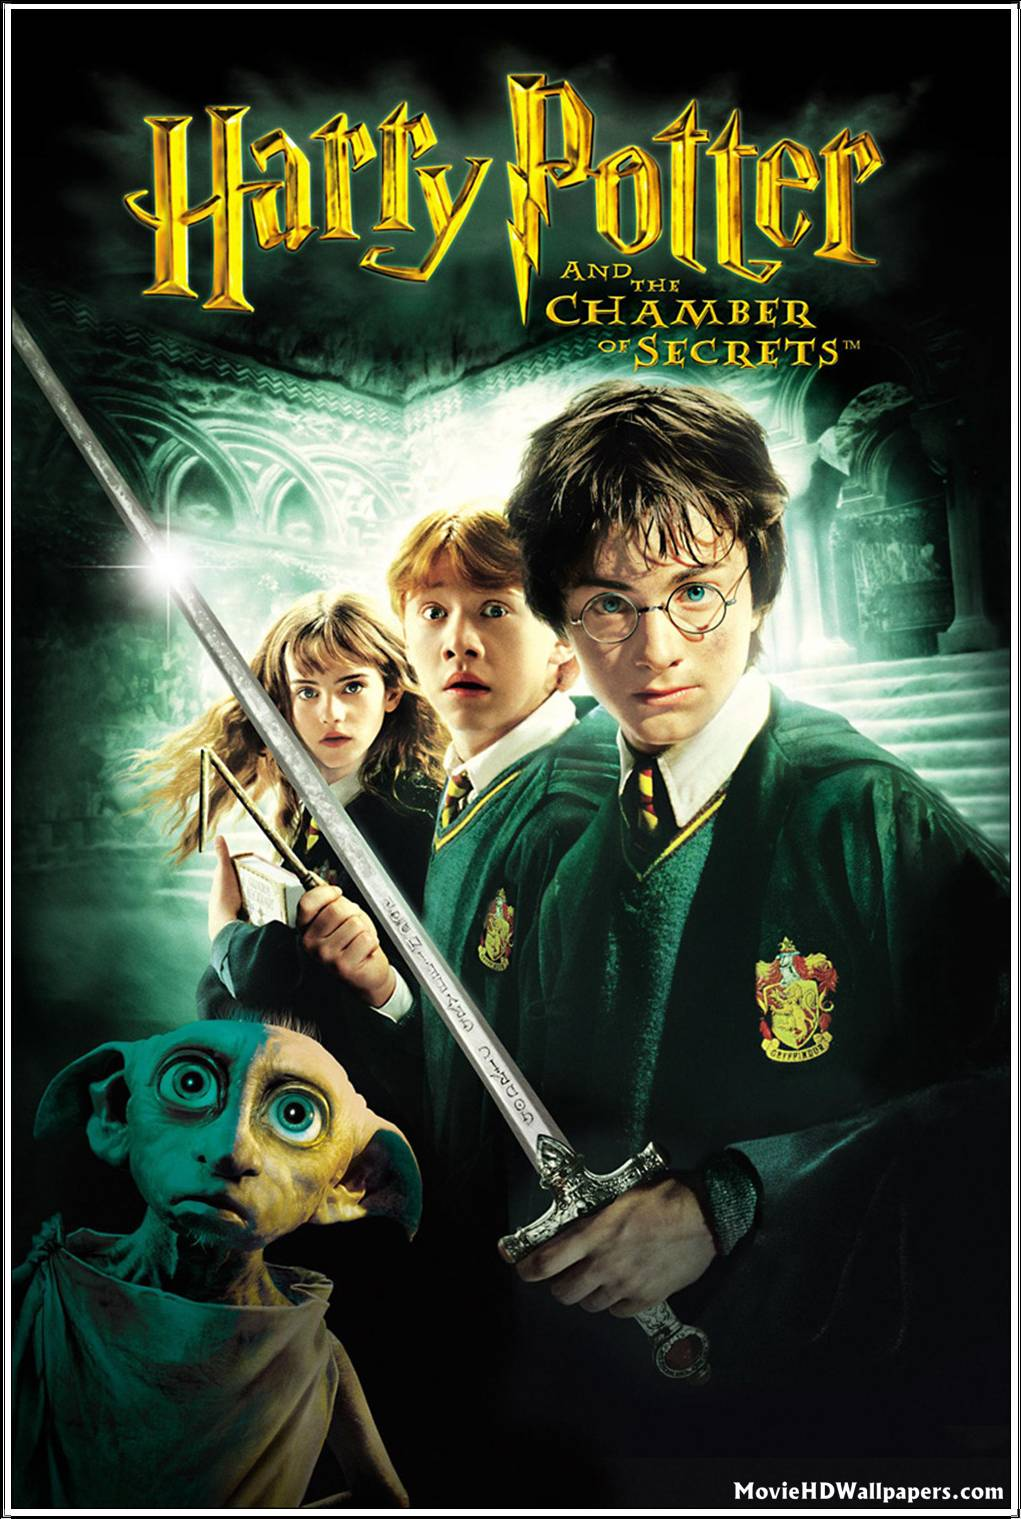 Harry Potter and the Chamber of Secrets 2002 Movie HD Wallpapers 1021x1519